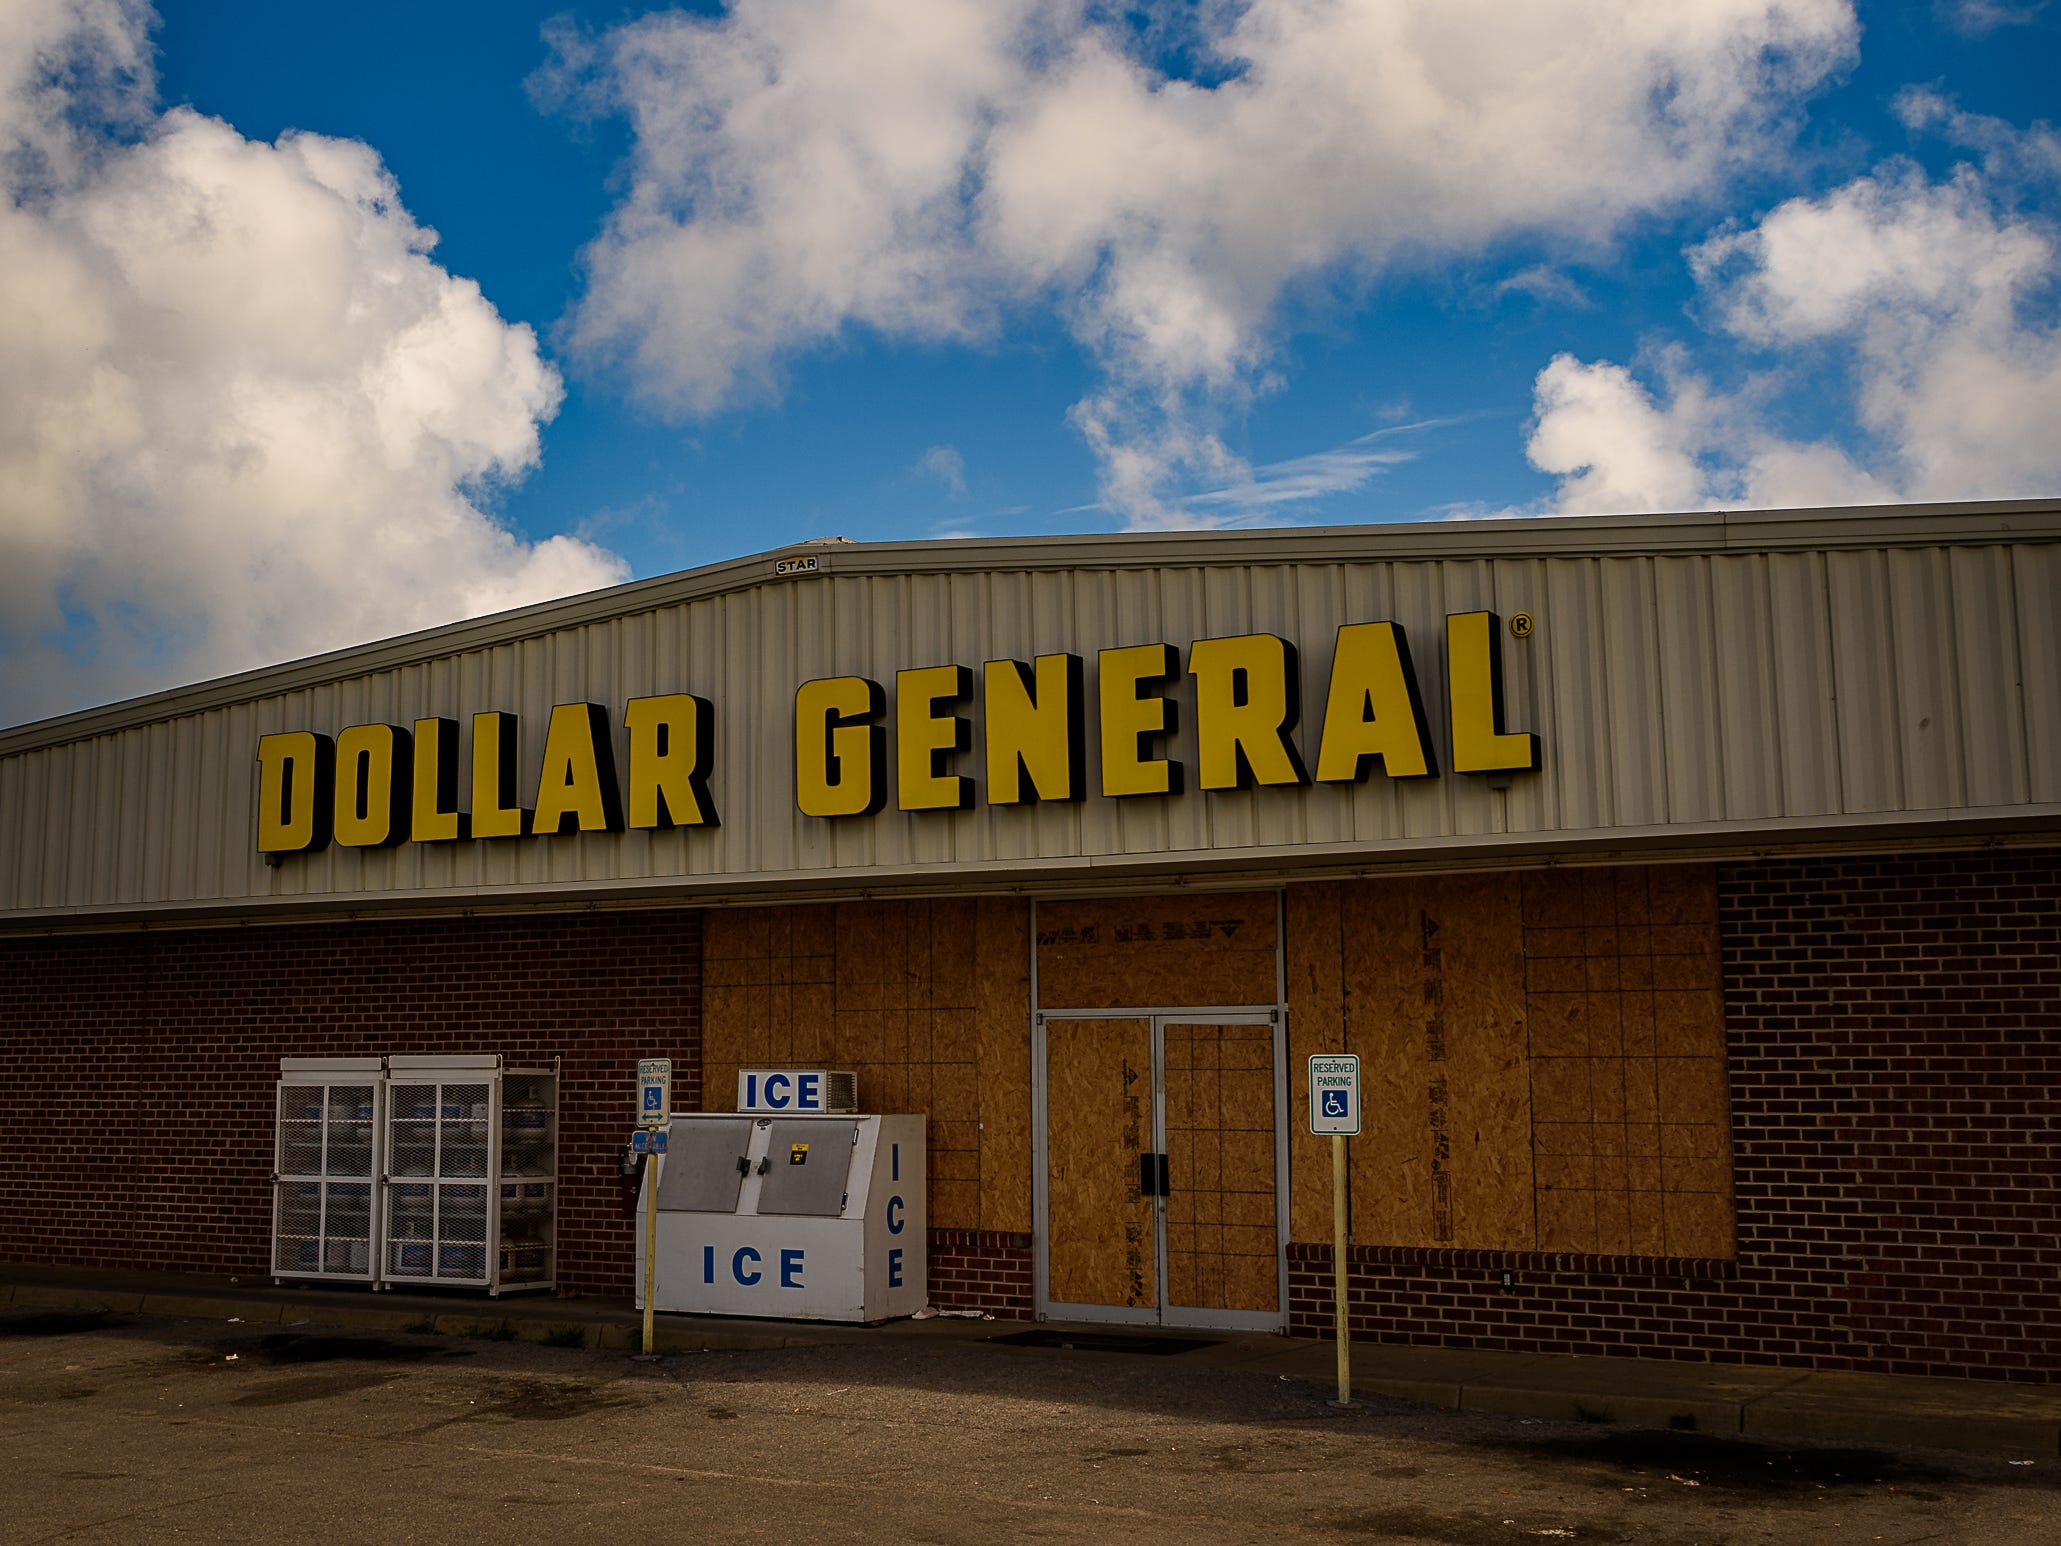 The Dollar General in Cape Charles in Northampton County, Virginia, boarded up in preparation for Hurricane Florence.